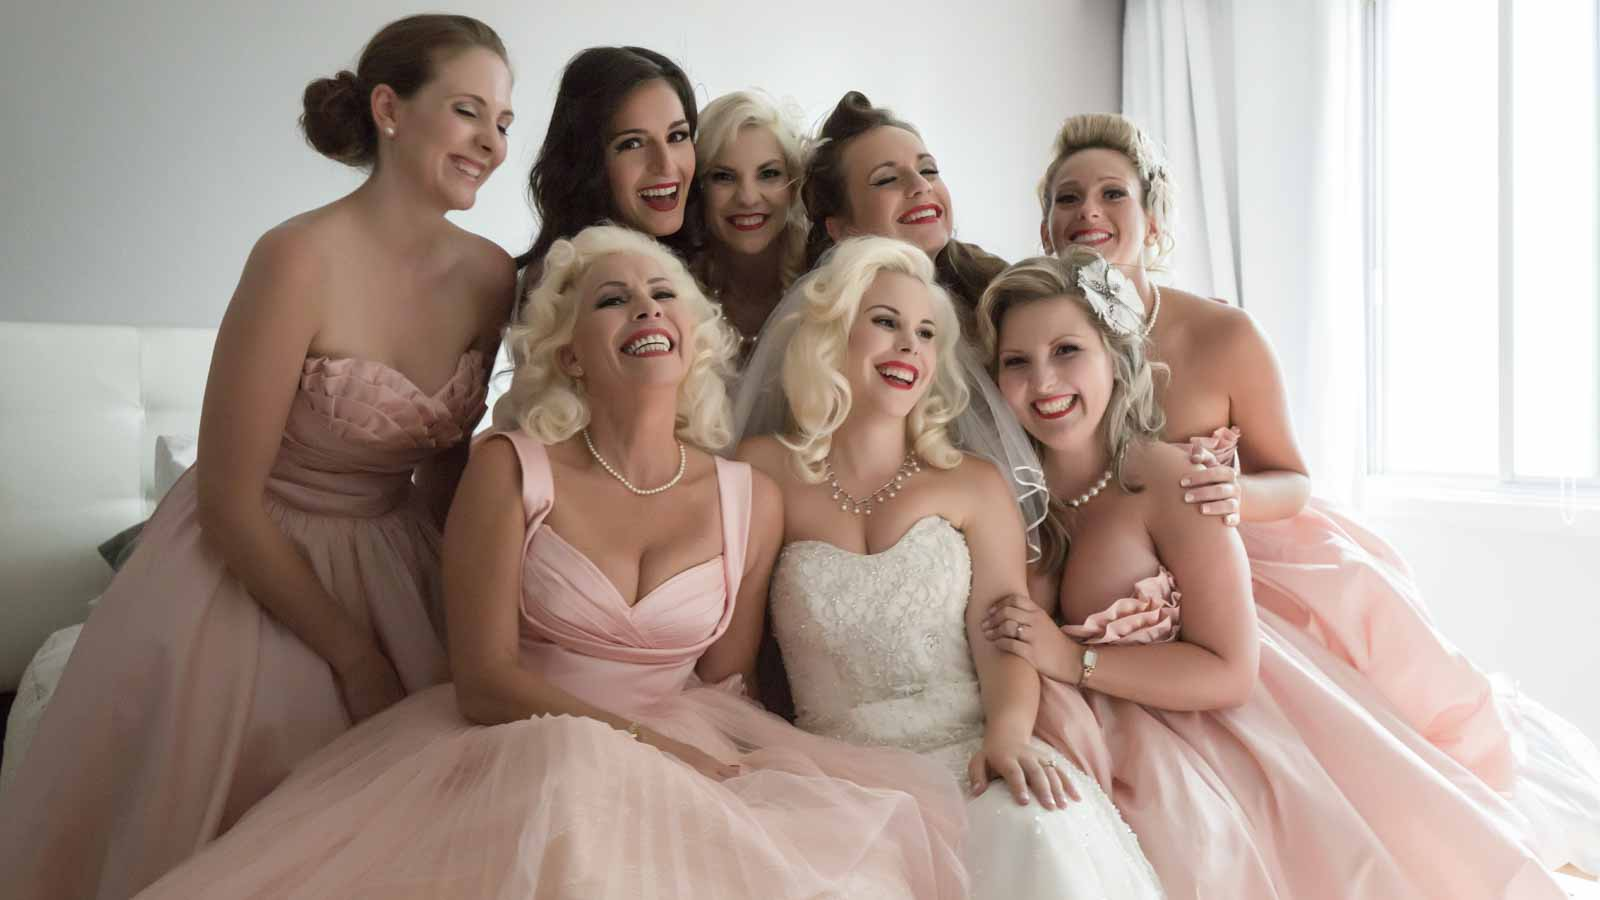 Bridesmaids taking group picture during preparation